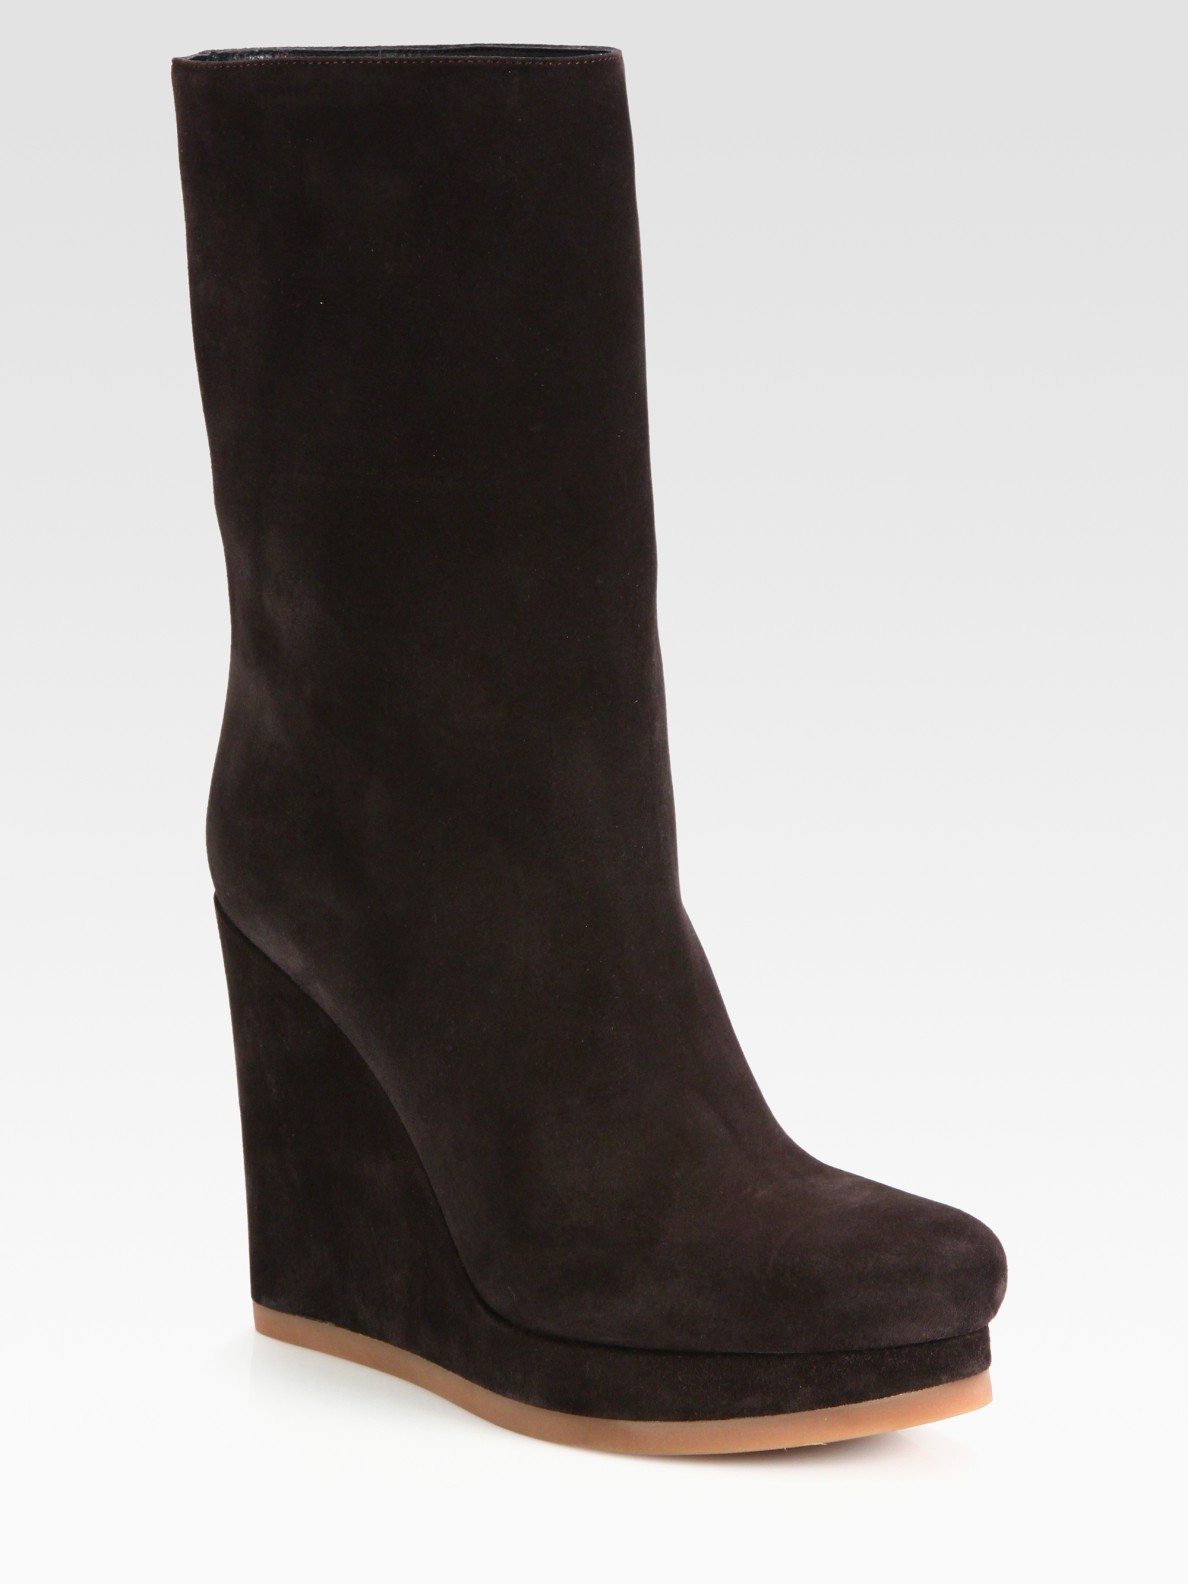 jil sander suede midcalf wedge boots in brown darkbrown